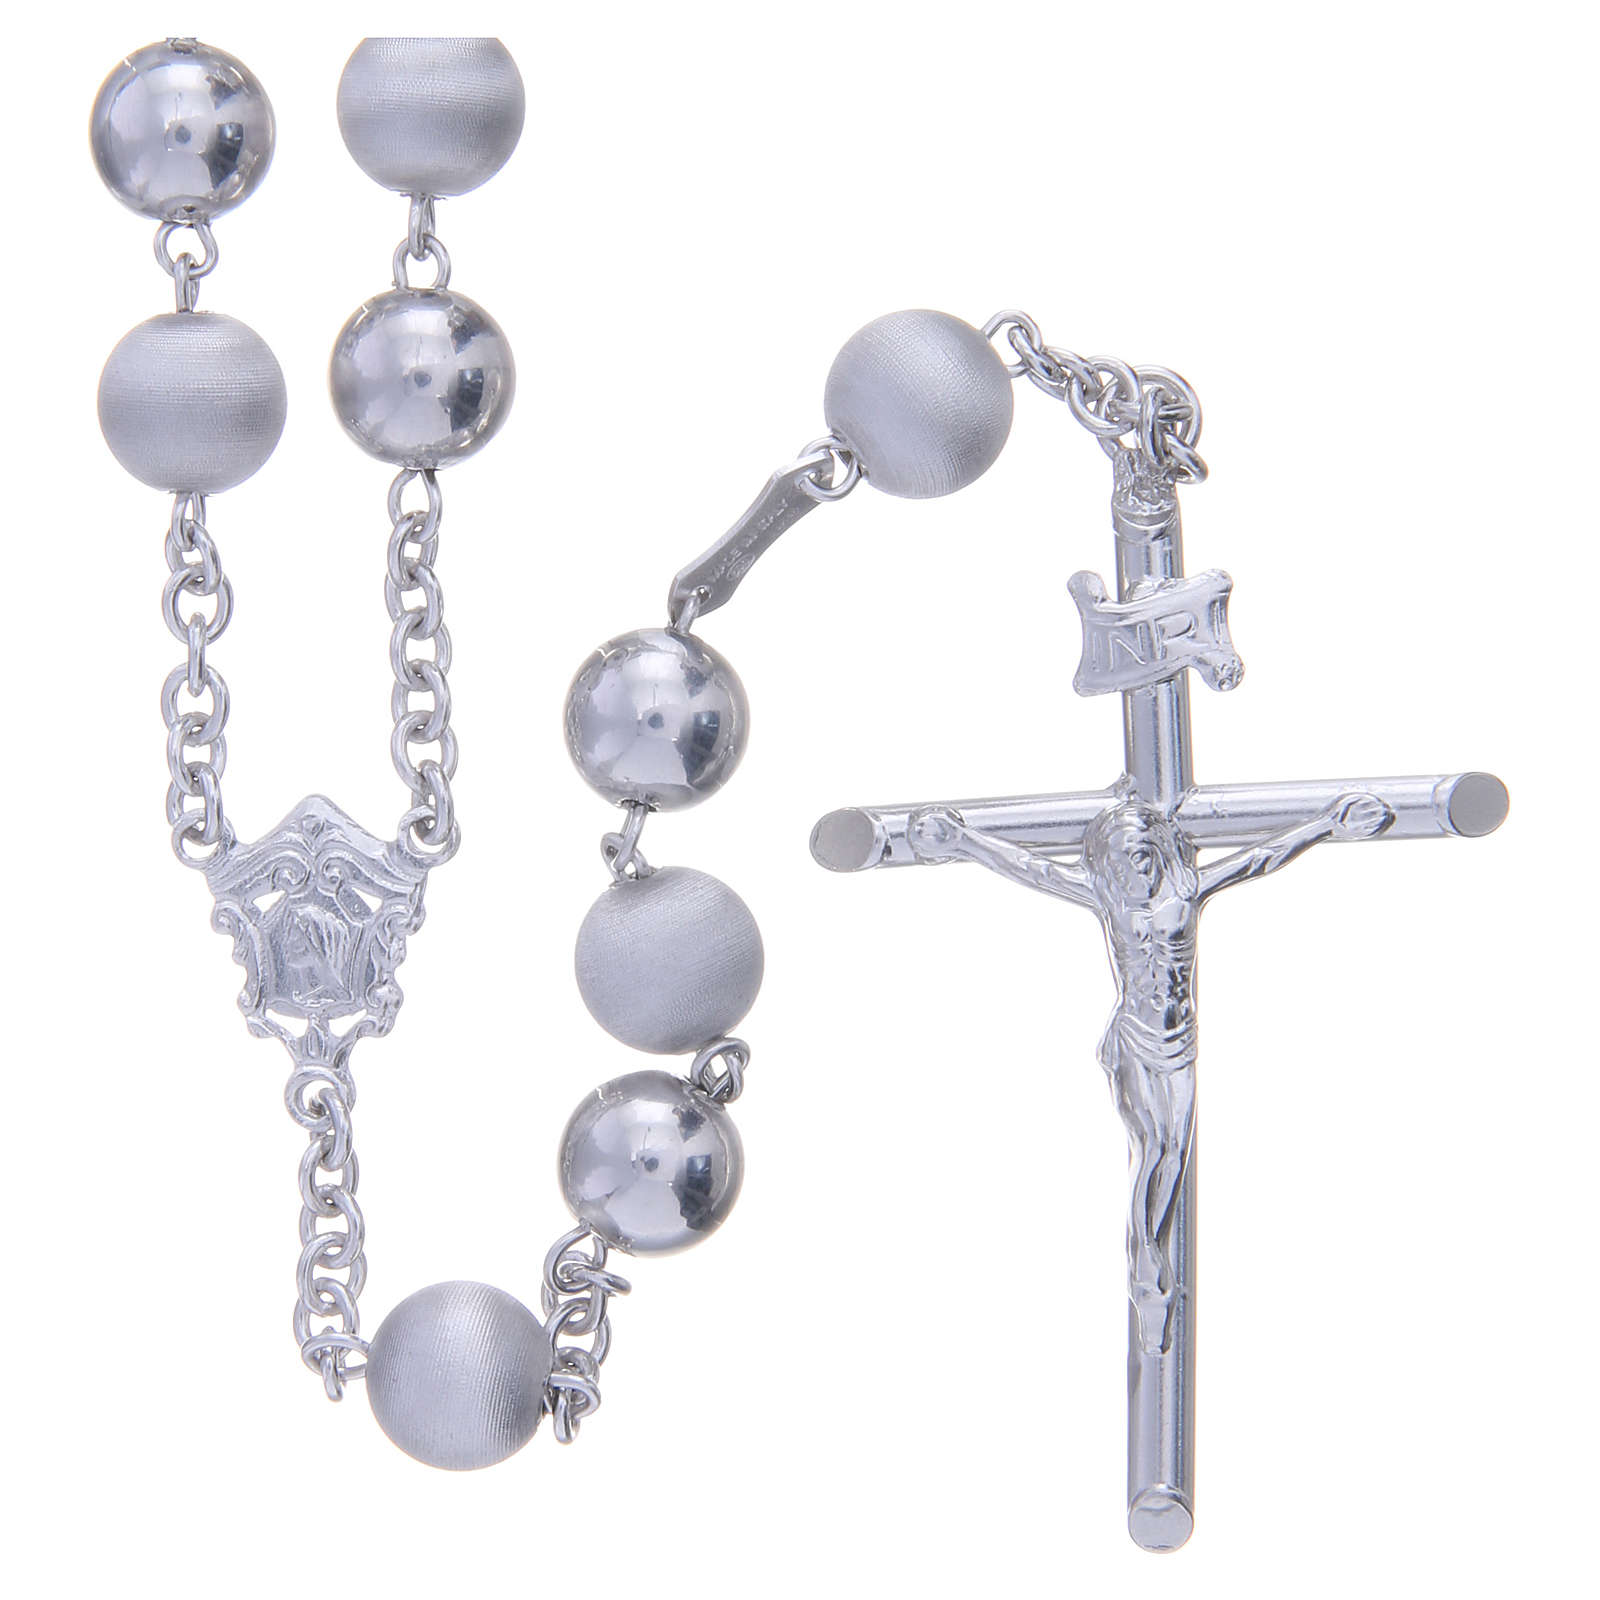 Rosary in 925 silver with 8mm velvety and smooth grains 4